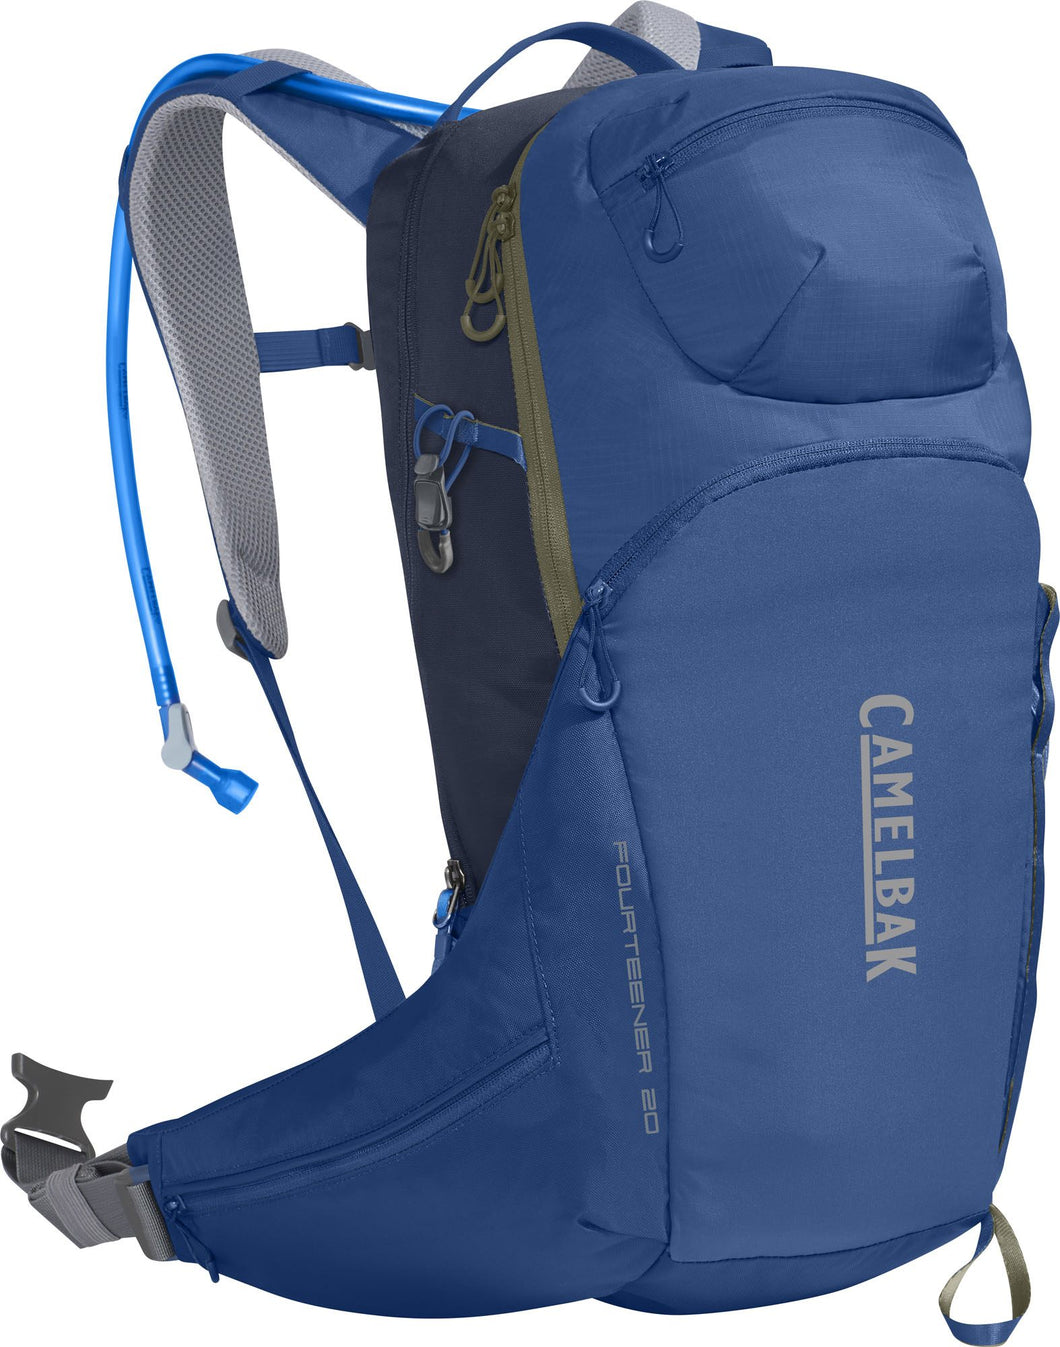 Fourteener 20 Hydration Pack